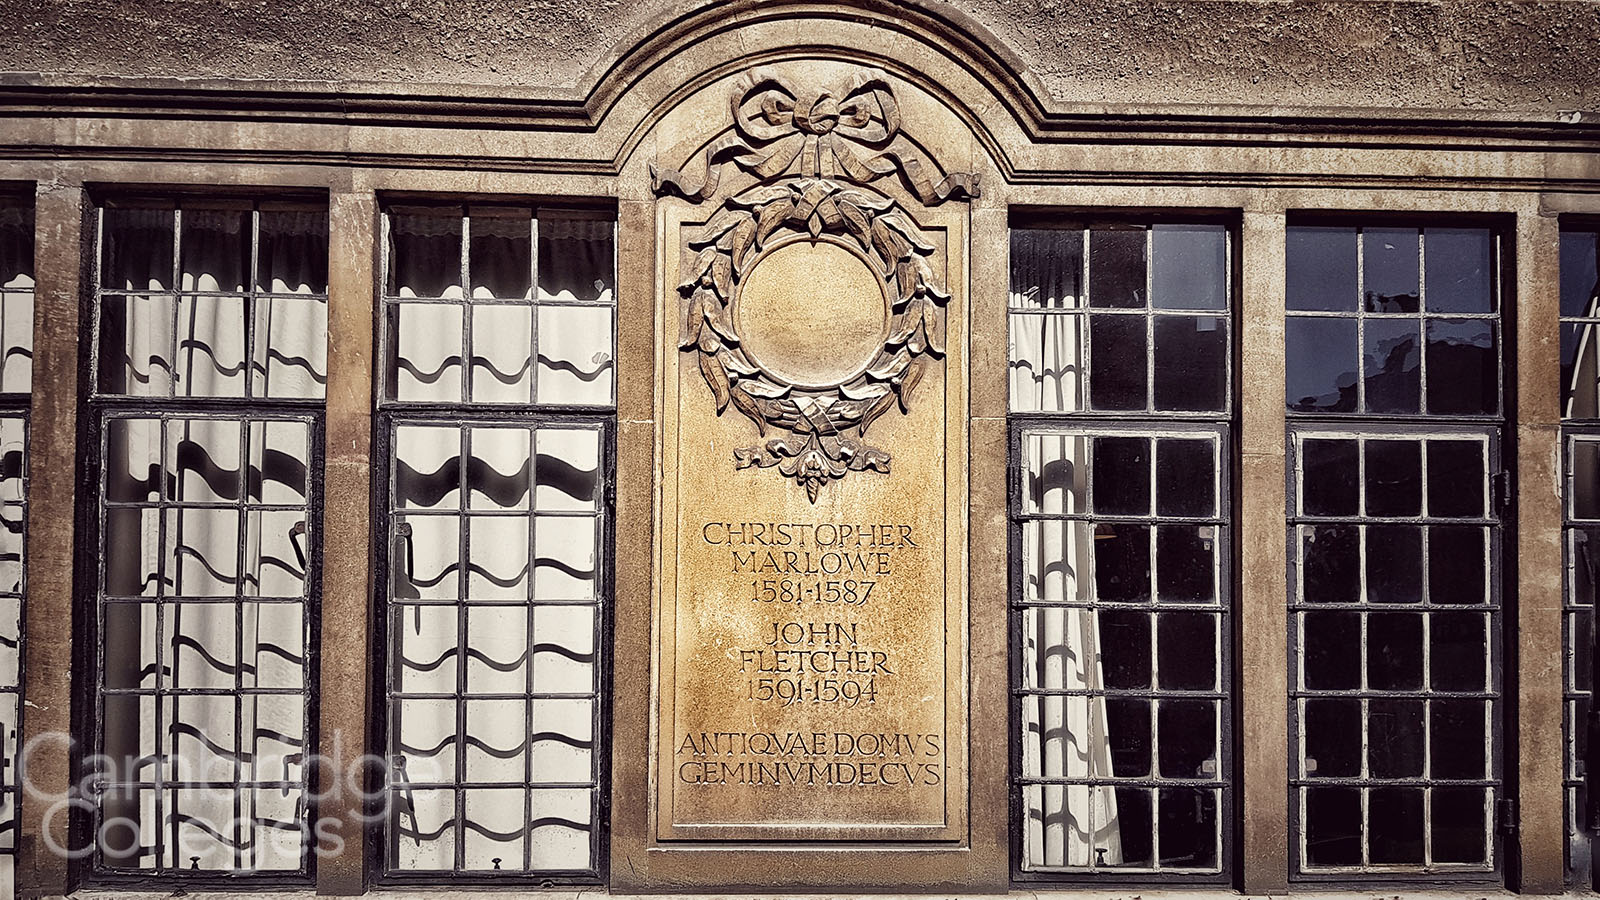 A plaque in Corpus Old Court commemorates both Christopher Marlowe and John Fletcher